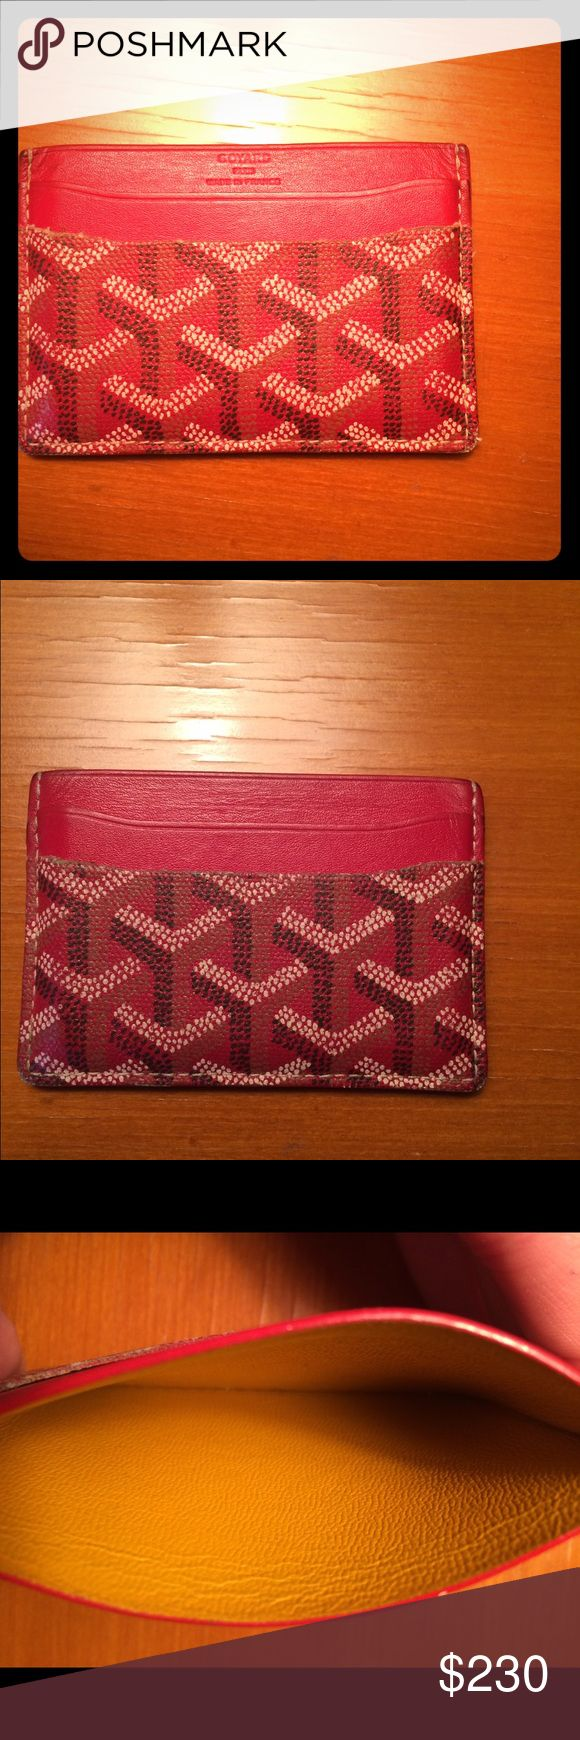 Goyard card holder Overall good condition of it Goyard Accessories Key & Card Holders